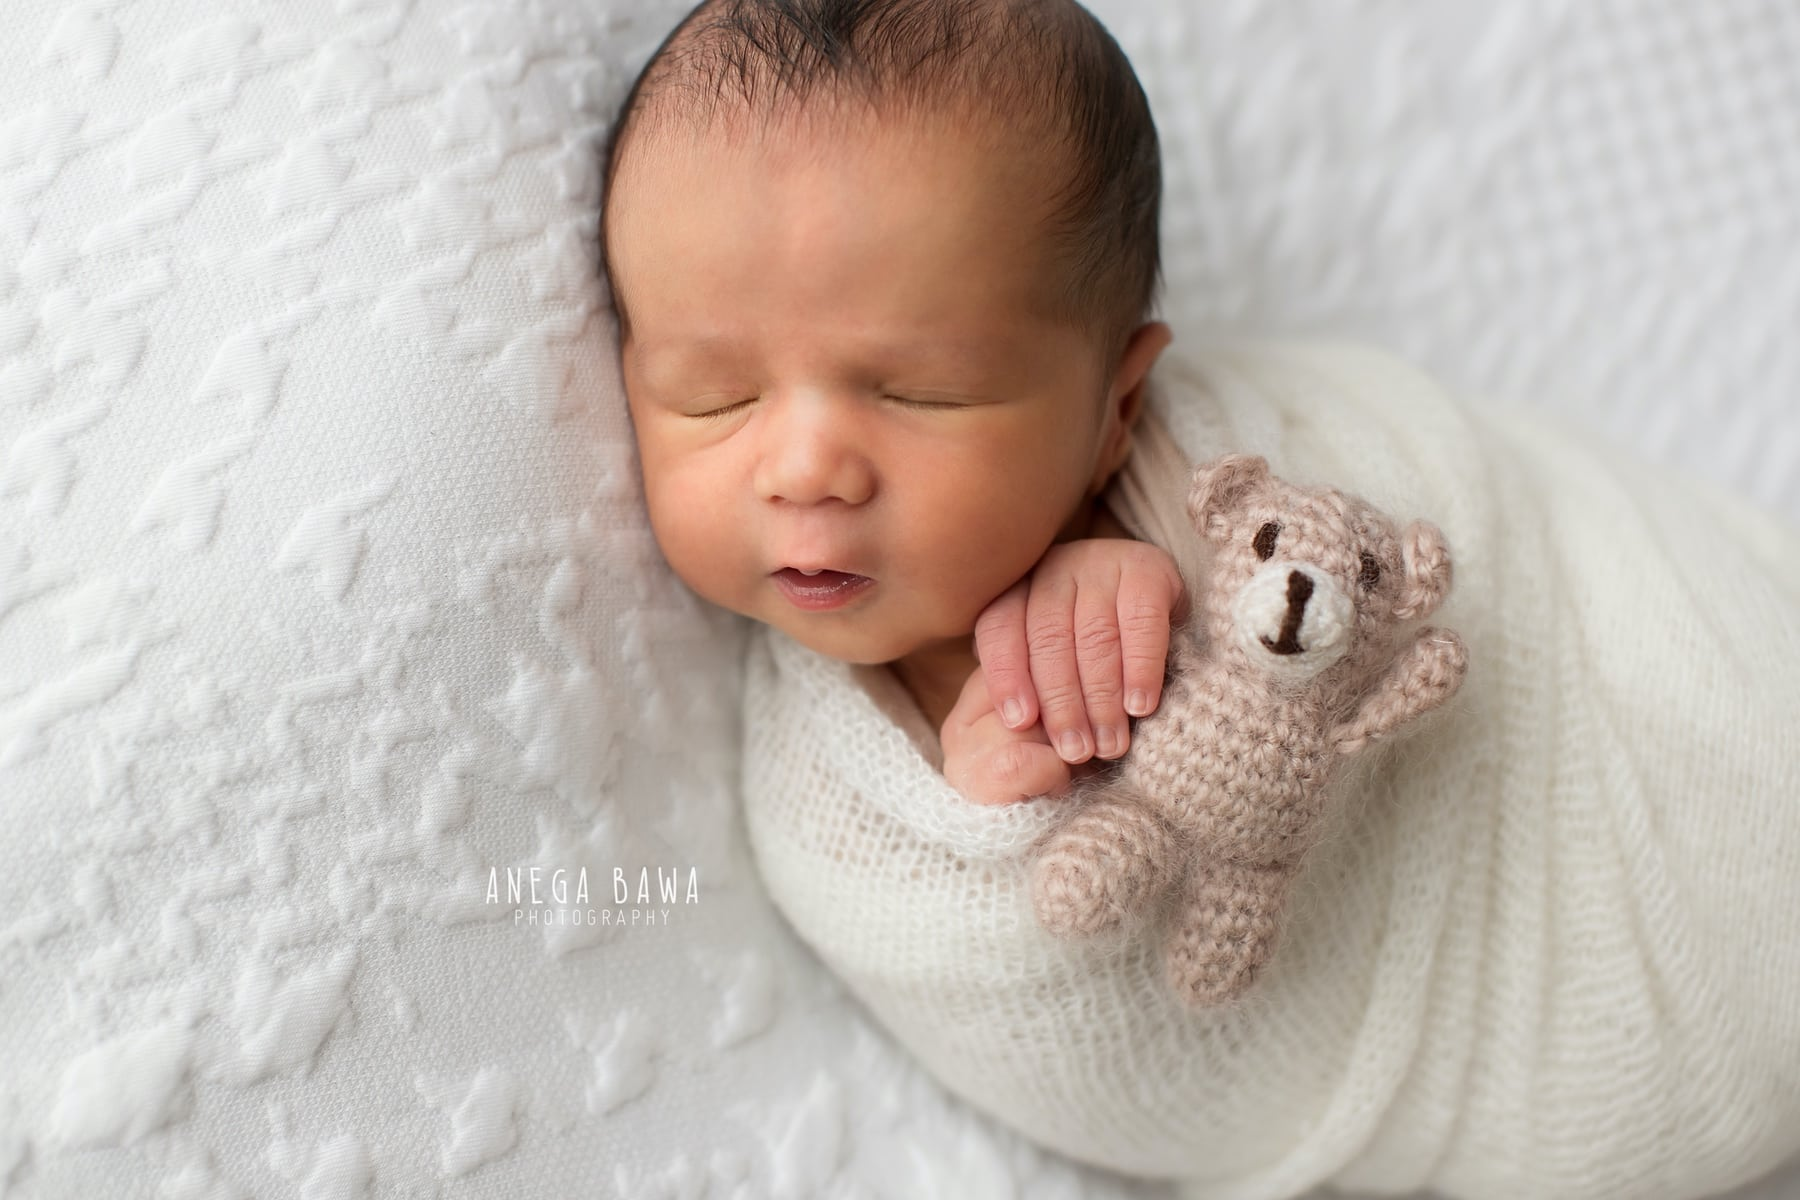 white newborn photography delhi 18 days baby boy photoshoot gurgaon anega bawa